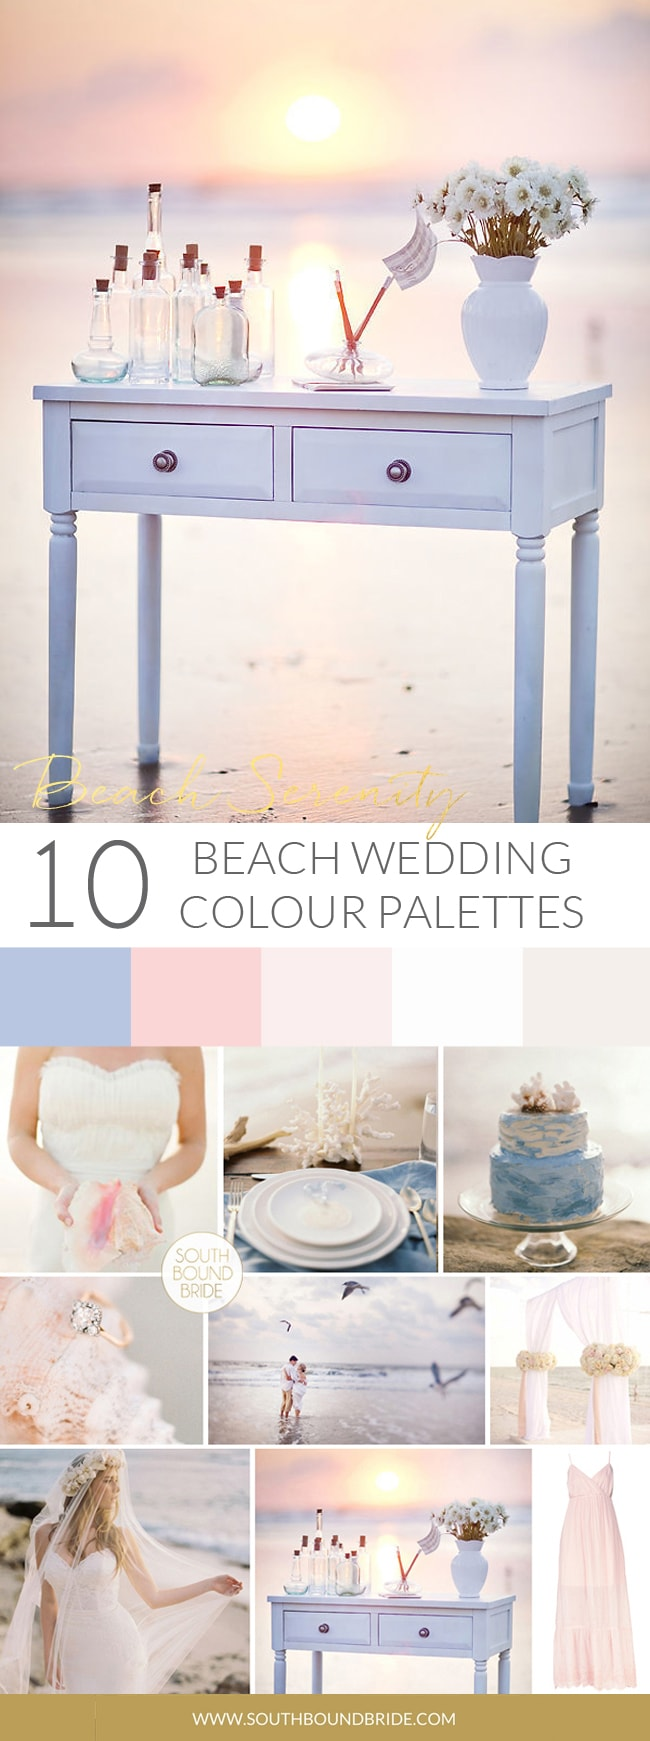 Beach Serenity Wedding Palette | SouthBound Bride